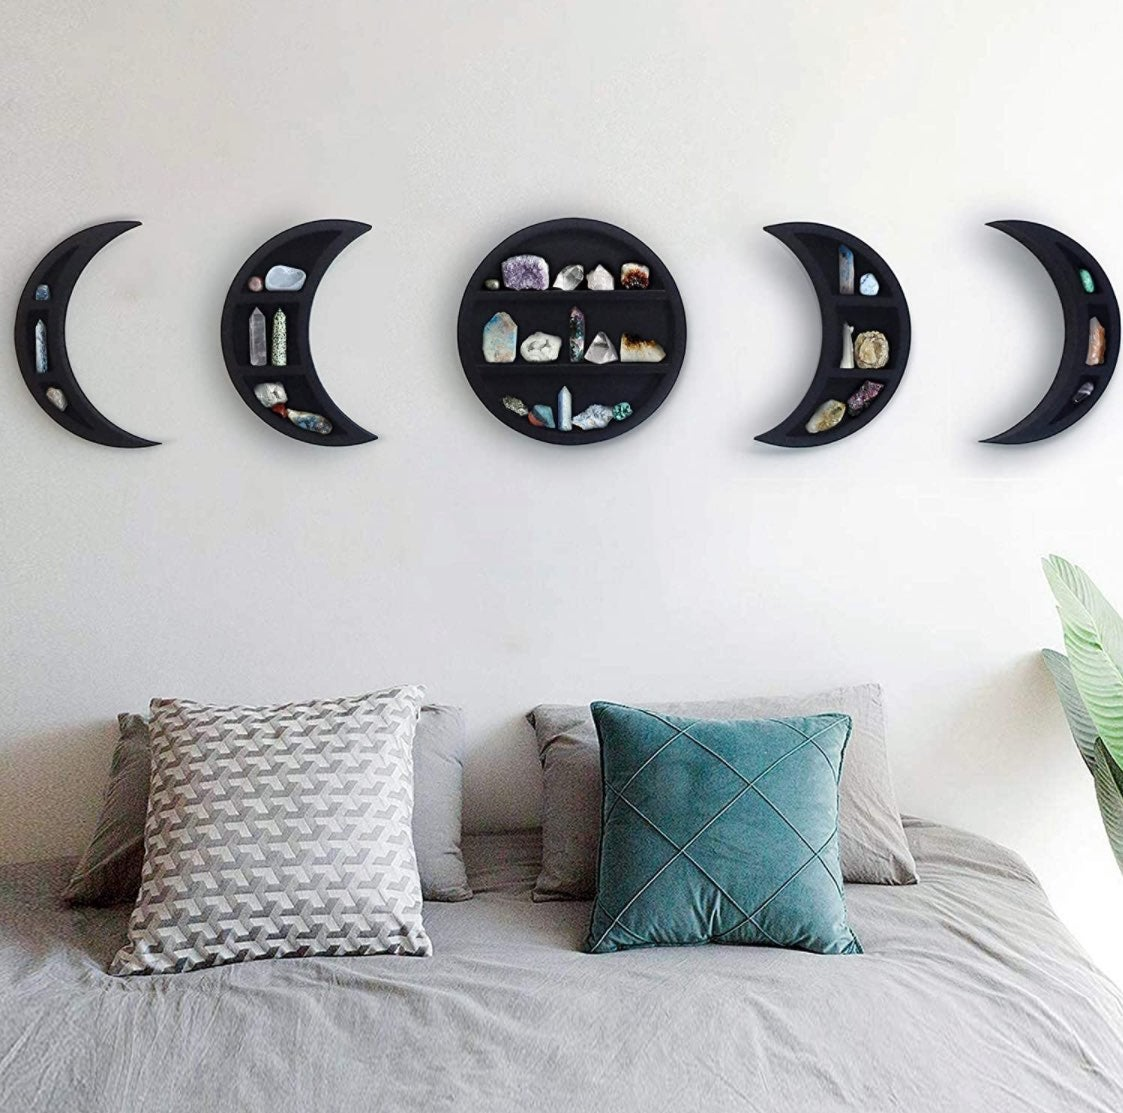 5-Pc Moon Stages Floating Shelves -Black